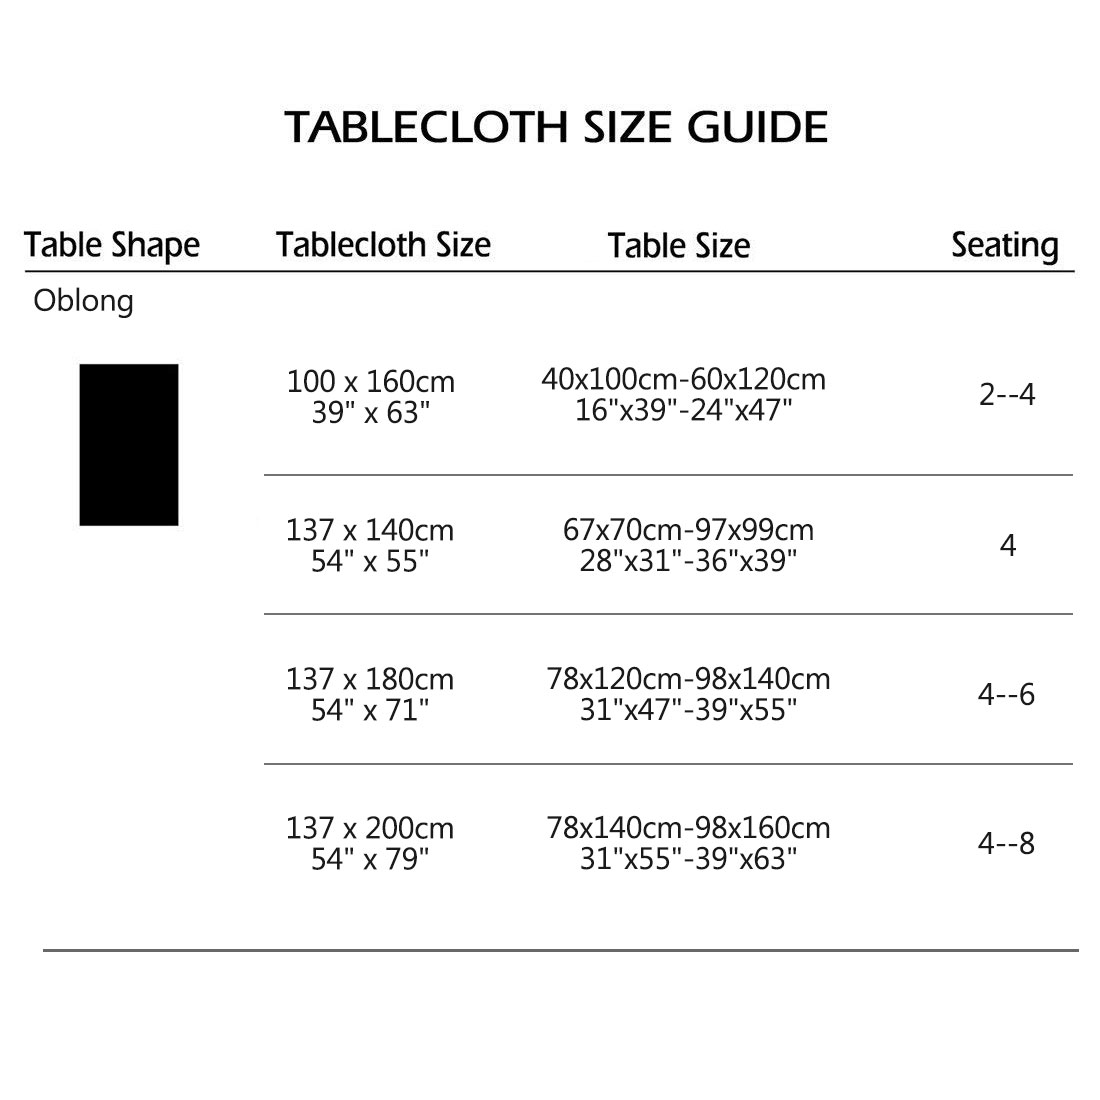 "Tablecloth PVC Vinyl Table Cover Oil Water Resistant Table Cloth 54"" x 71"", #6 - image 3 de 7"